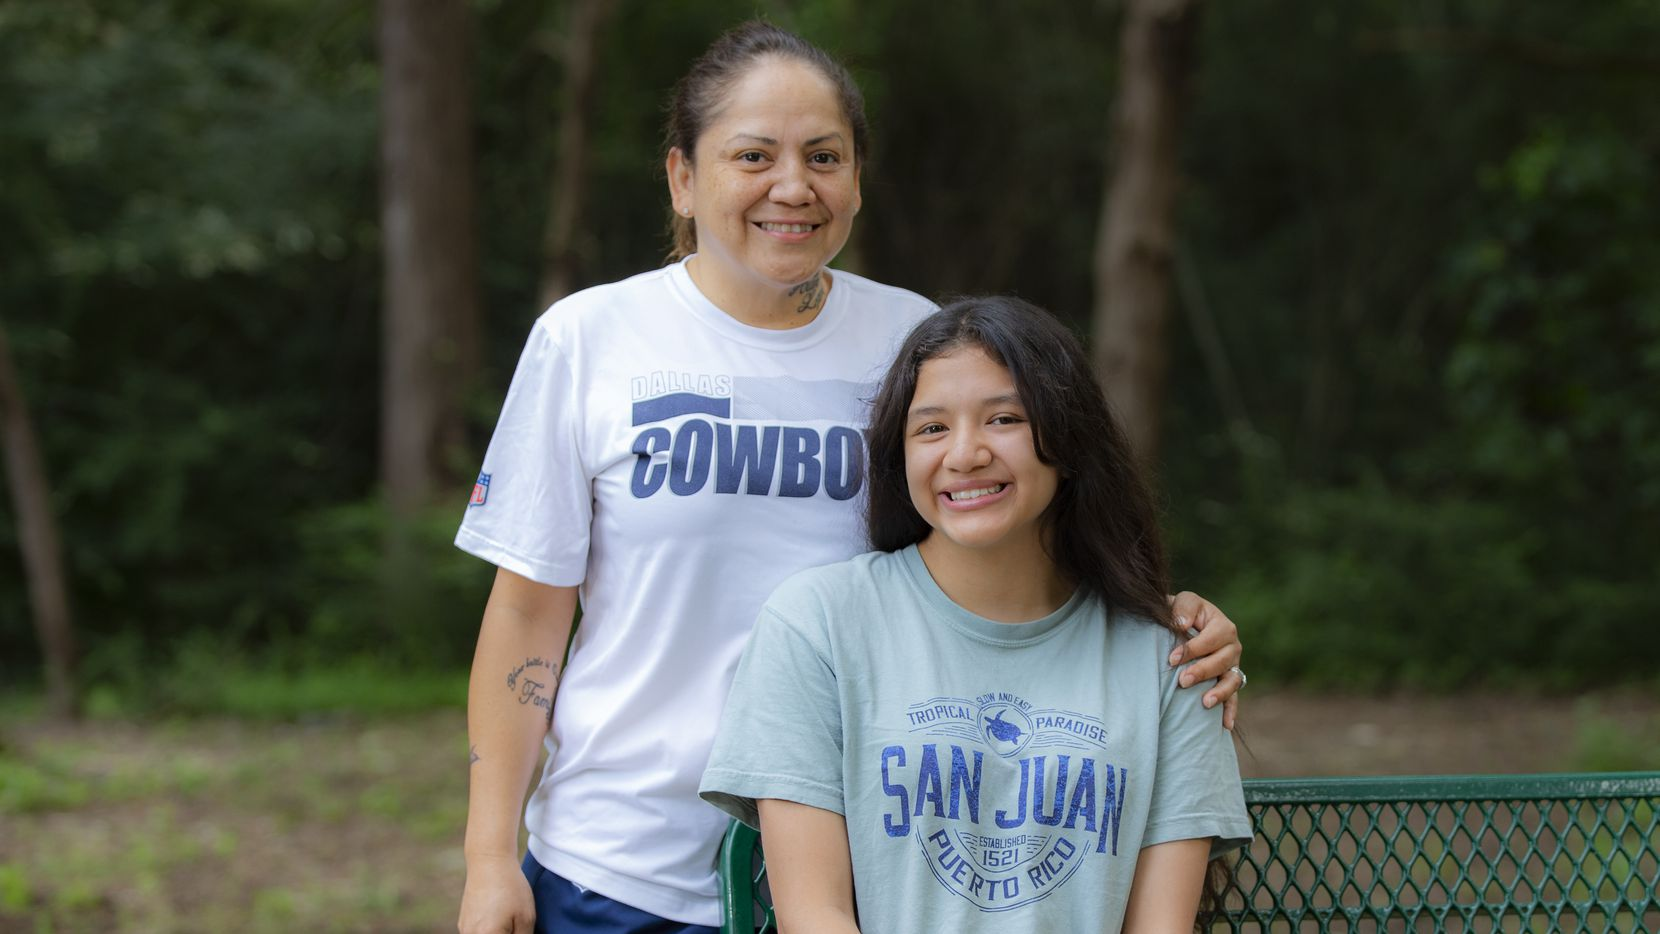 Diana Lopez and her daughter Ariel Lopez, 14, pose for a photo during a Girls Embracing Mothers camp the non-profit held at the STEM Center of Excellence in Dallas, Saturday, June 12, 2021. Girls Embracing Mothers provides services for girls with currently or formerly incarcerated mothers.